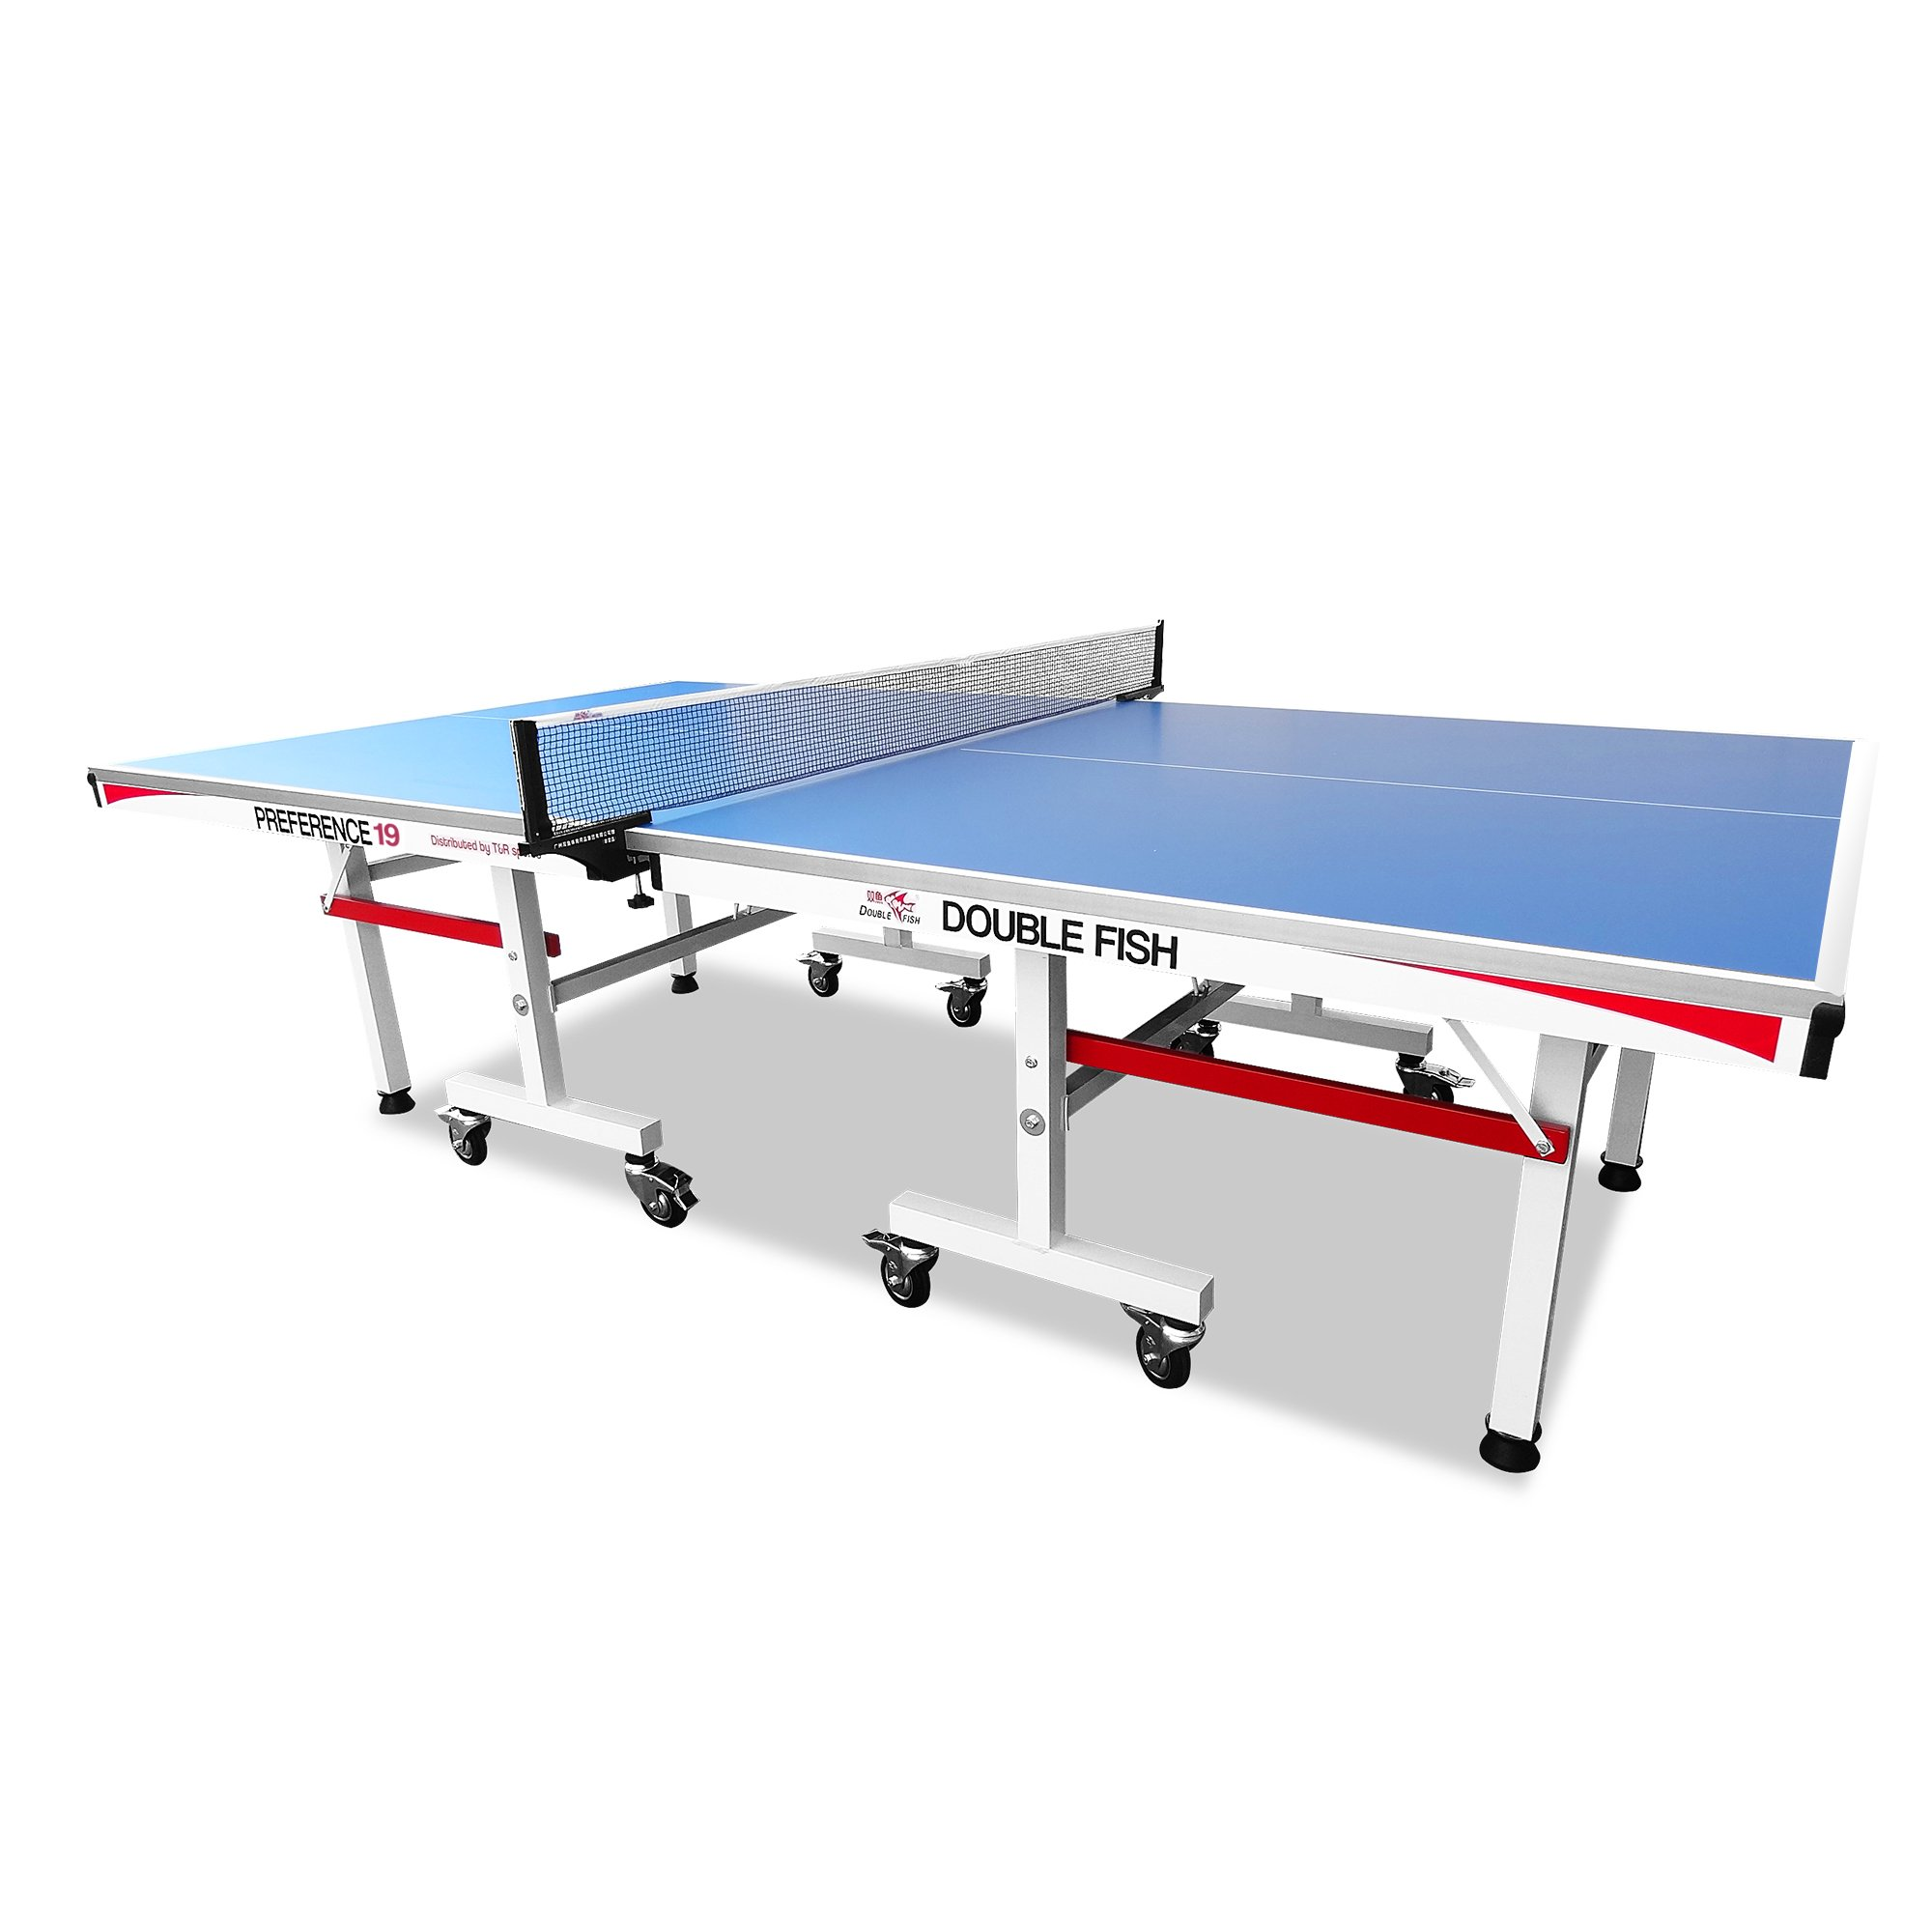 Double Fish Extra Thick 3/4 inch Indoor Outdoor Table Tennis Table Professional Foldable Ping Pong Table w/ Free Double Fish Accessory Pack Rackets Balls and Net by T&R sports